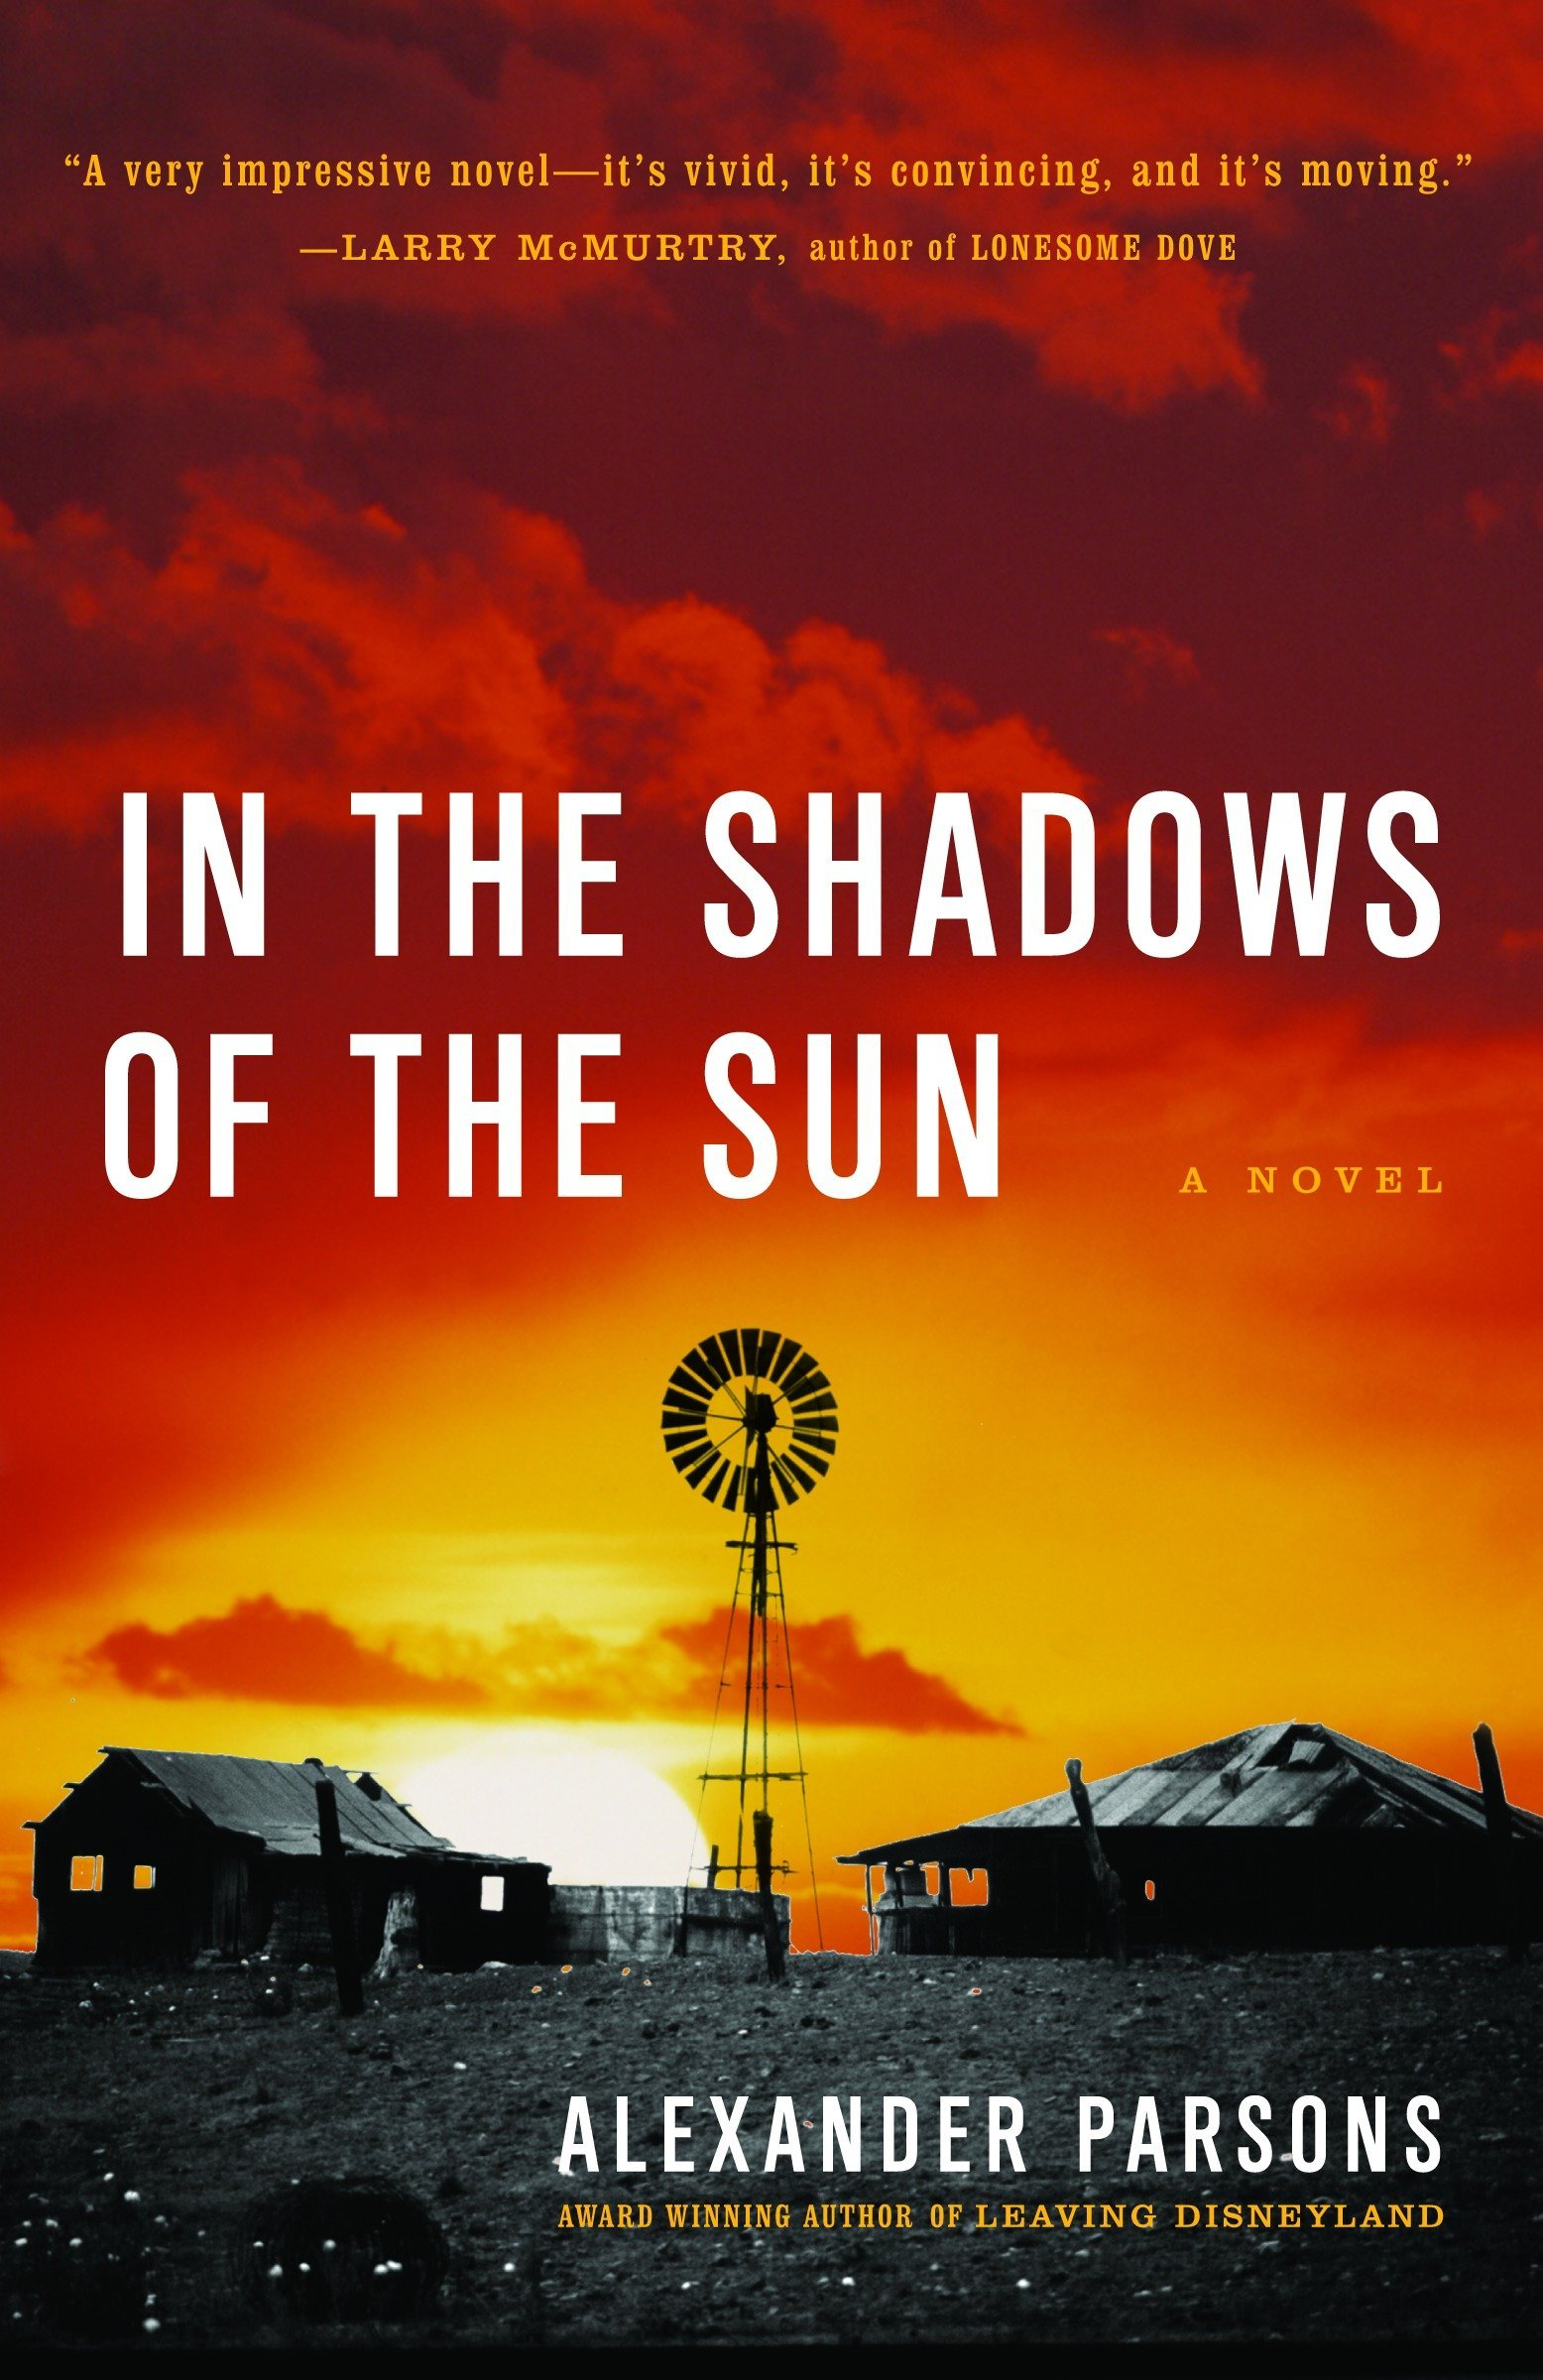 Amazon.com: In the Shadows of the Sun (9781400077151): Alexander Parsons:  Books